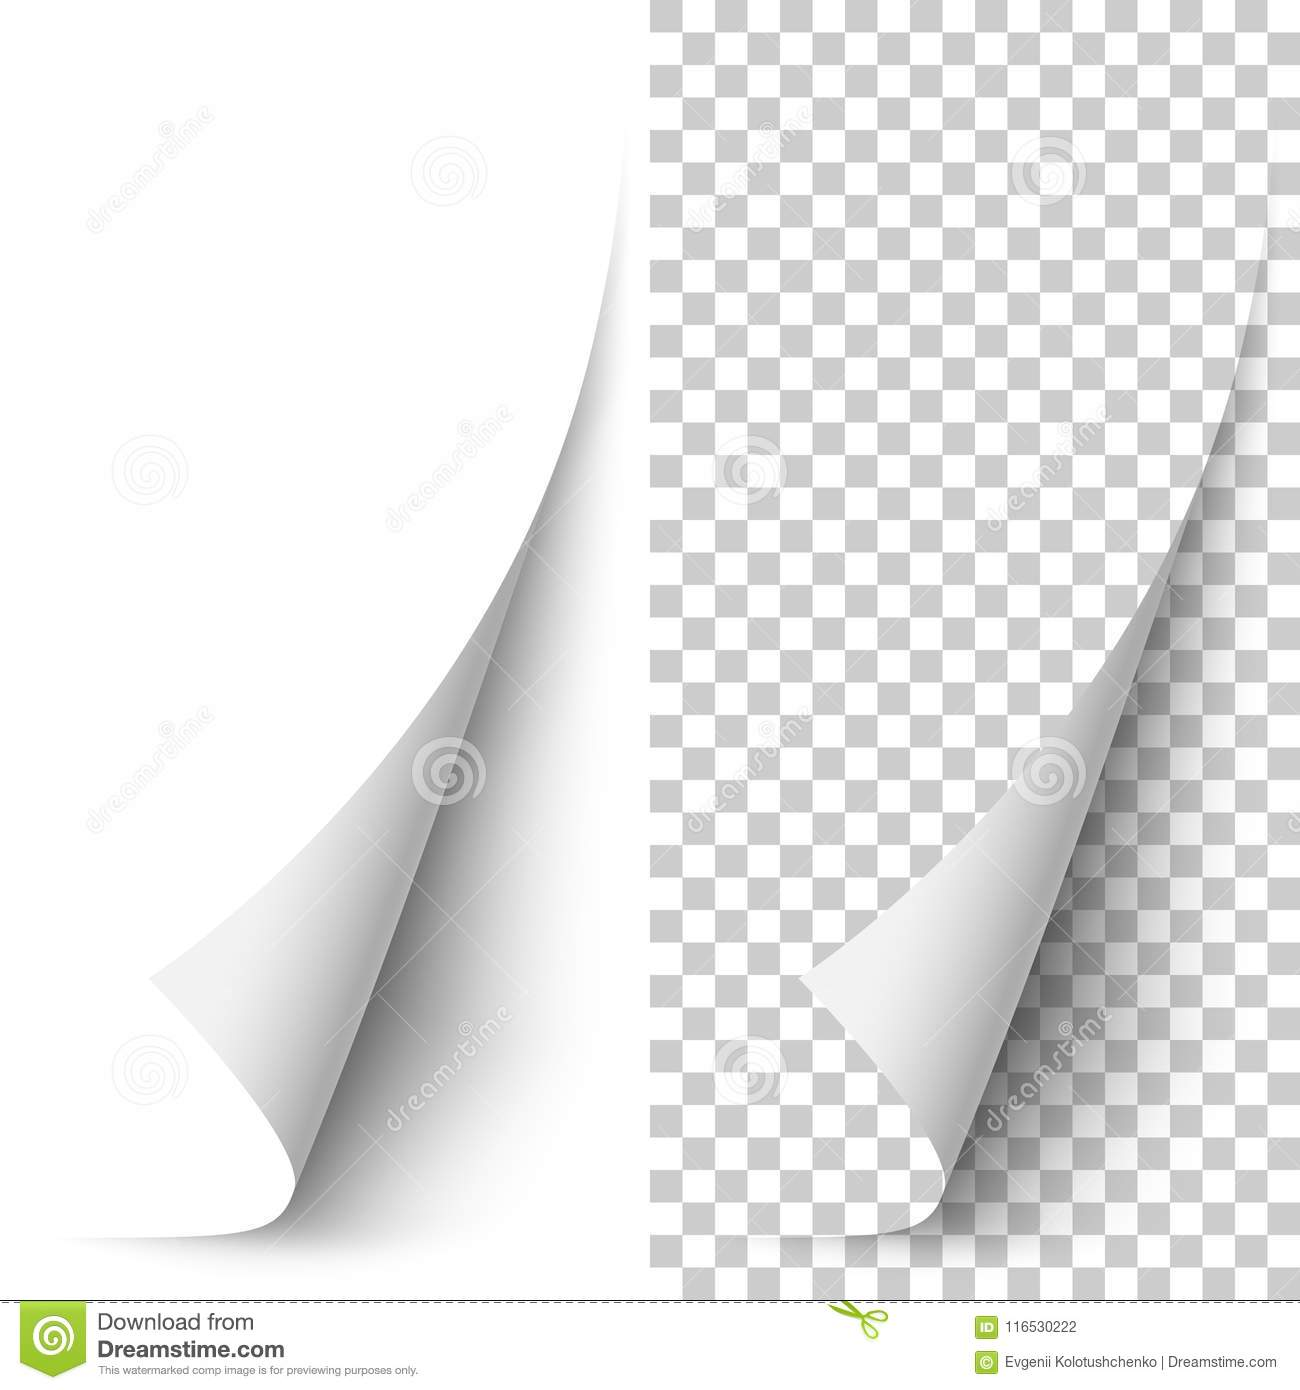 white vertical paper template stock illustrations 8270 white vertical paper template stock illustrations vectors clipart dreamstime